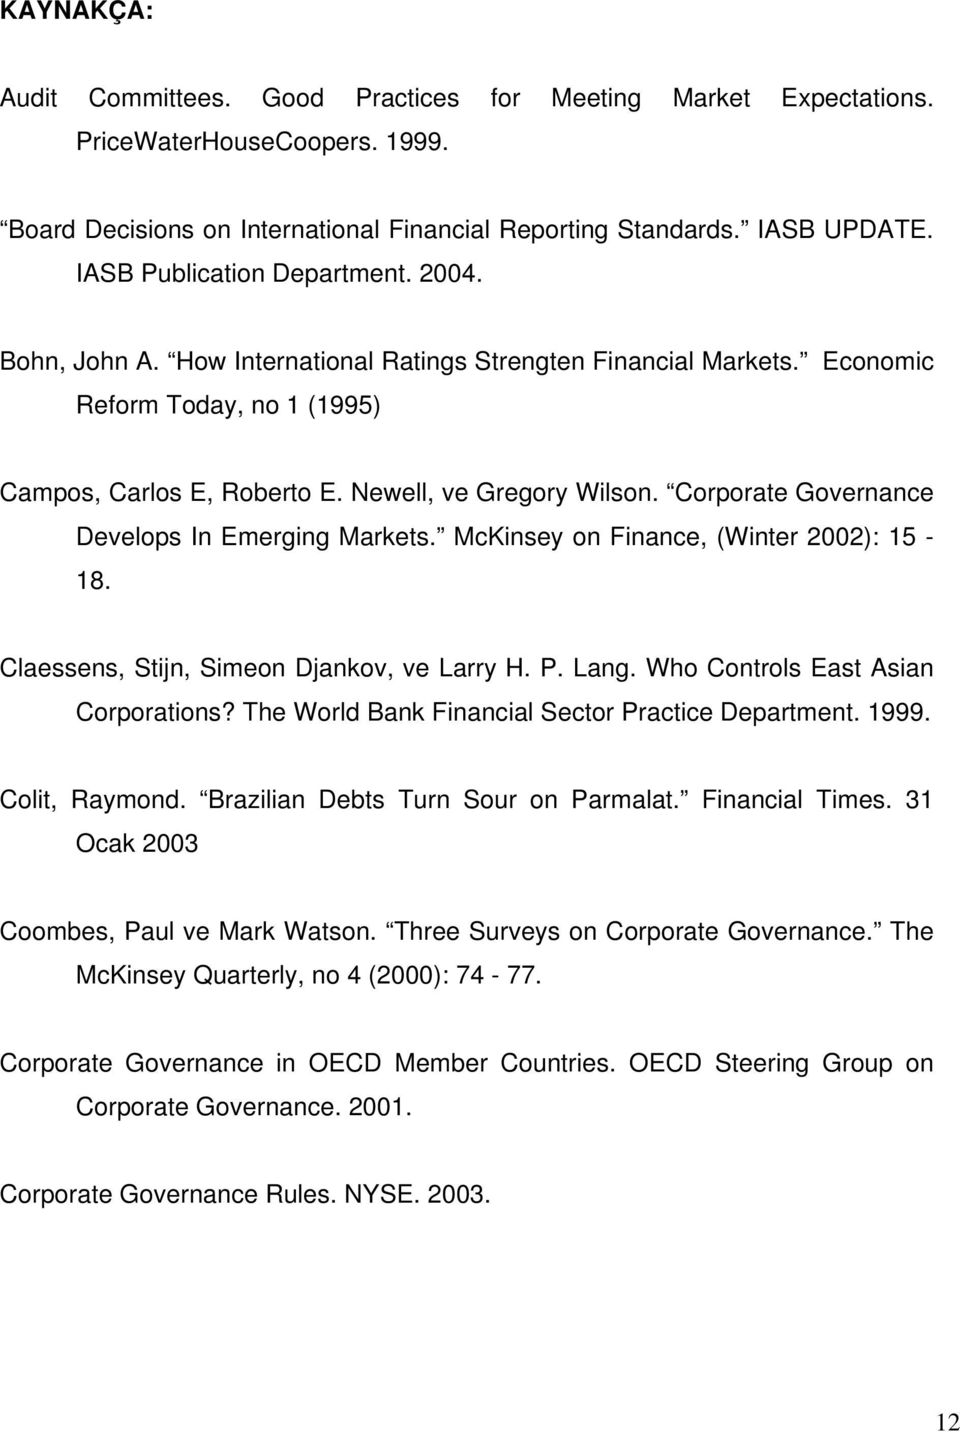 Corporate Governance Develops In Emerging Markets. McKinsey on Finance, (Winter 2002): 15-18. Claessens, Stijn, Simeon Djankov, ve Larry H. P. Lang. Who Controls East Asian Corporations?